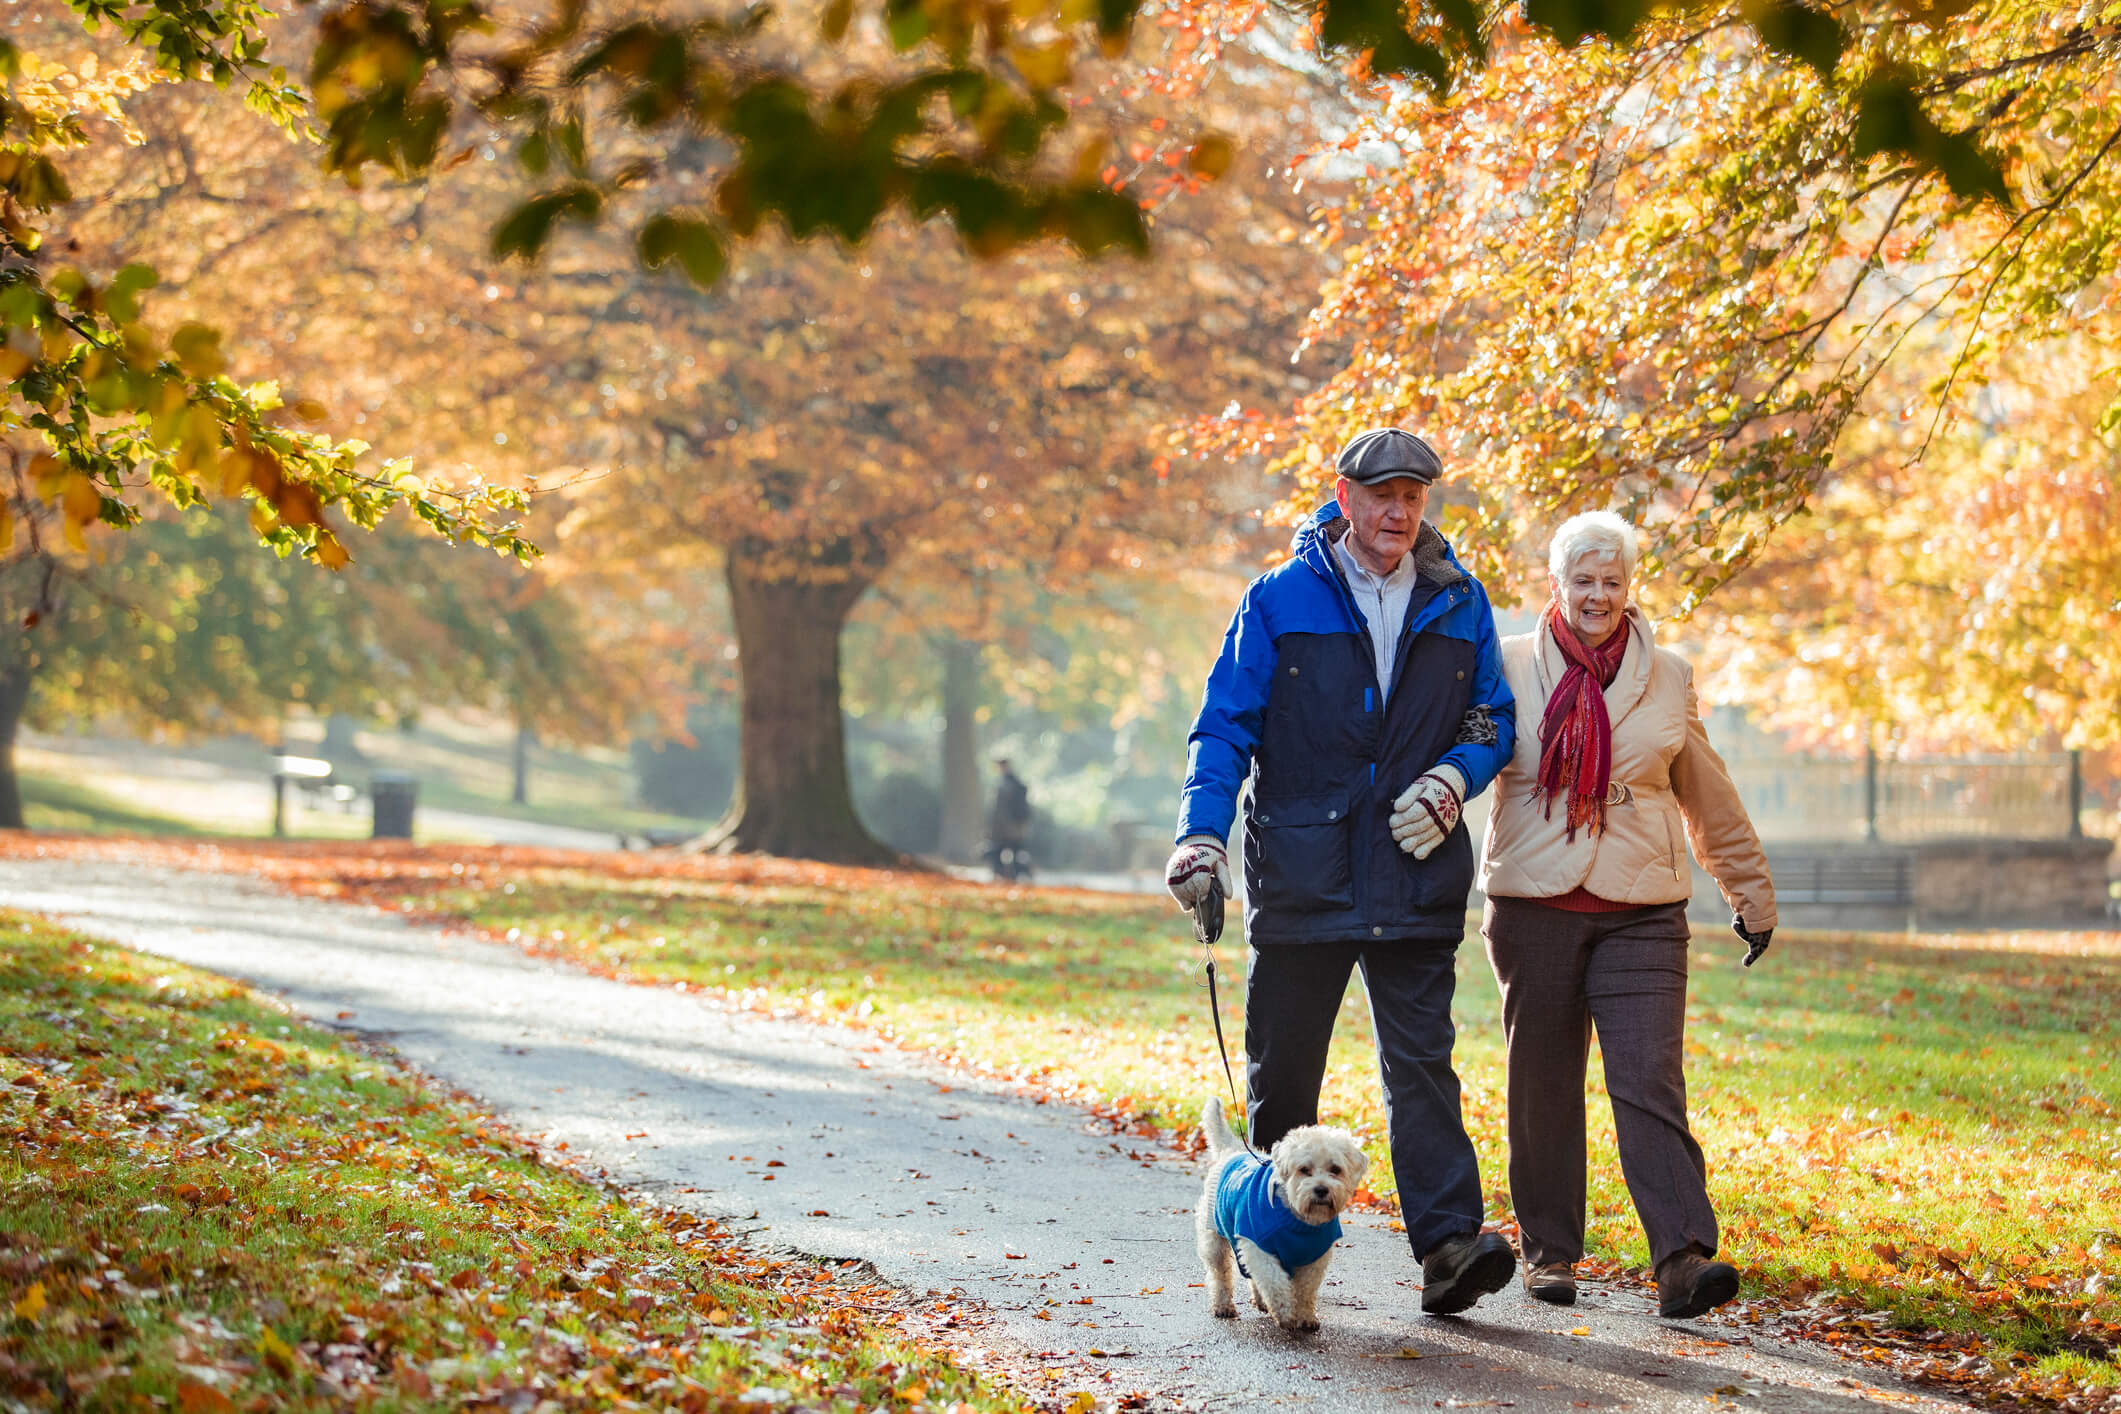 Image of previous post - 10 FALL-FRIENDLY ACTIVITIES FOR SENIORS